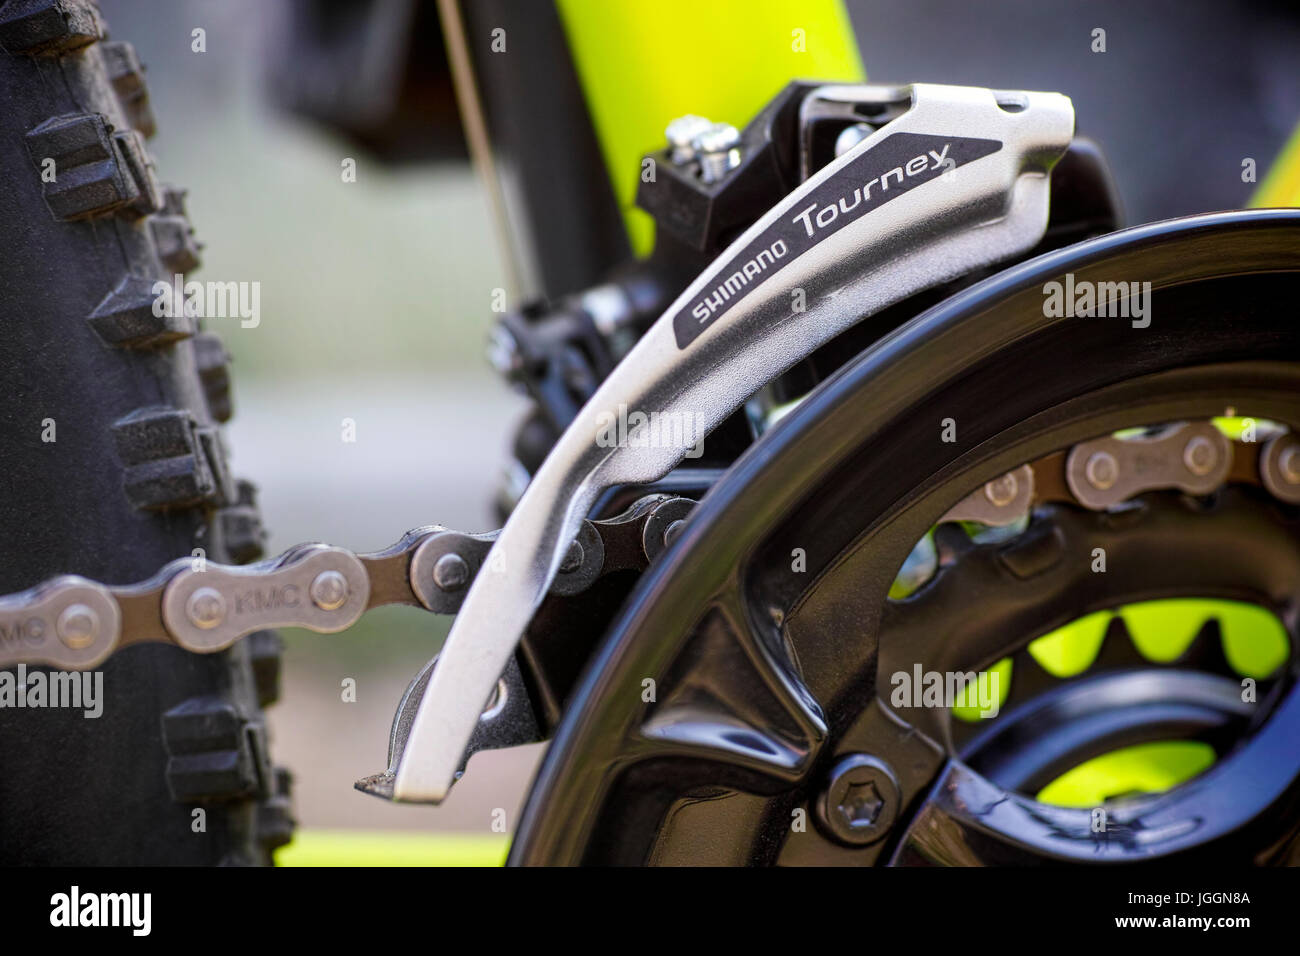 Tambov, Russian Federation - May 07, 2017 Close-up of Shimano Tourney front derailleur on bicycle chainwheel. - Stock Image